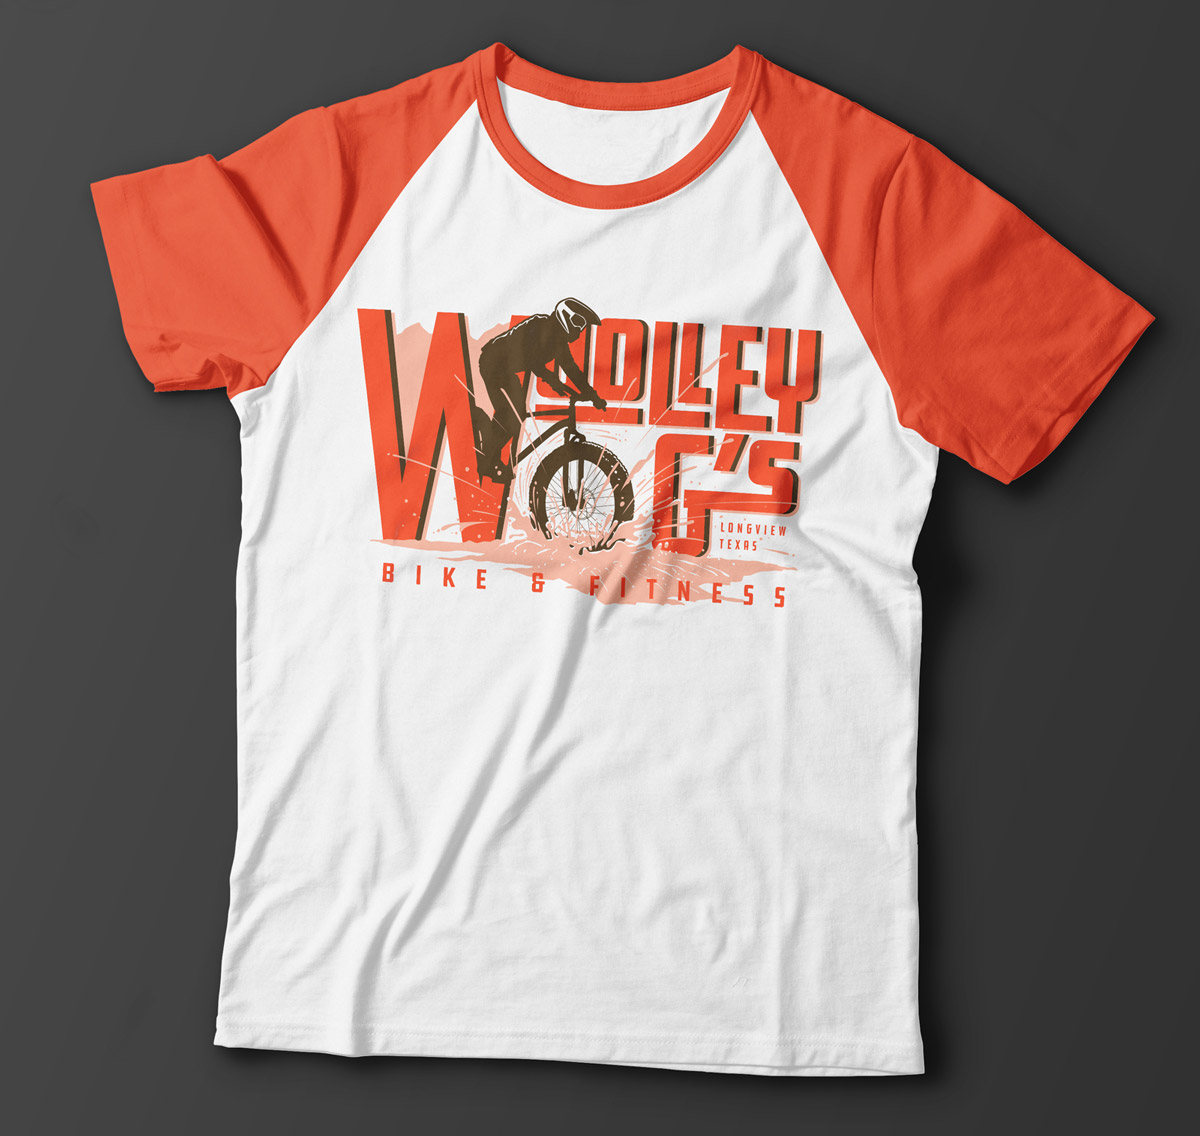 Woolley Gs T-shirts